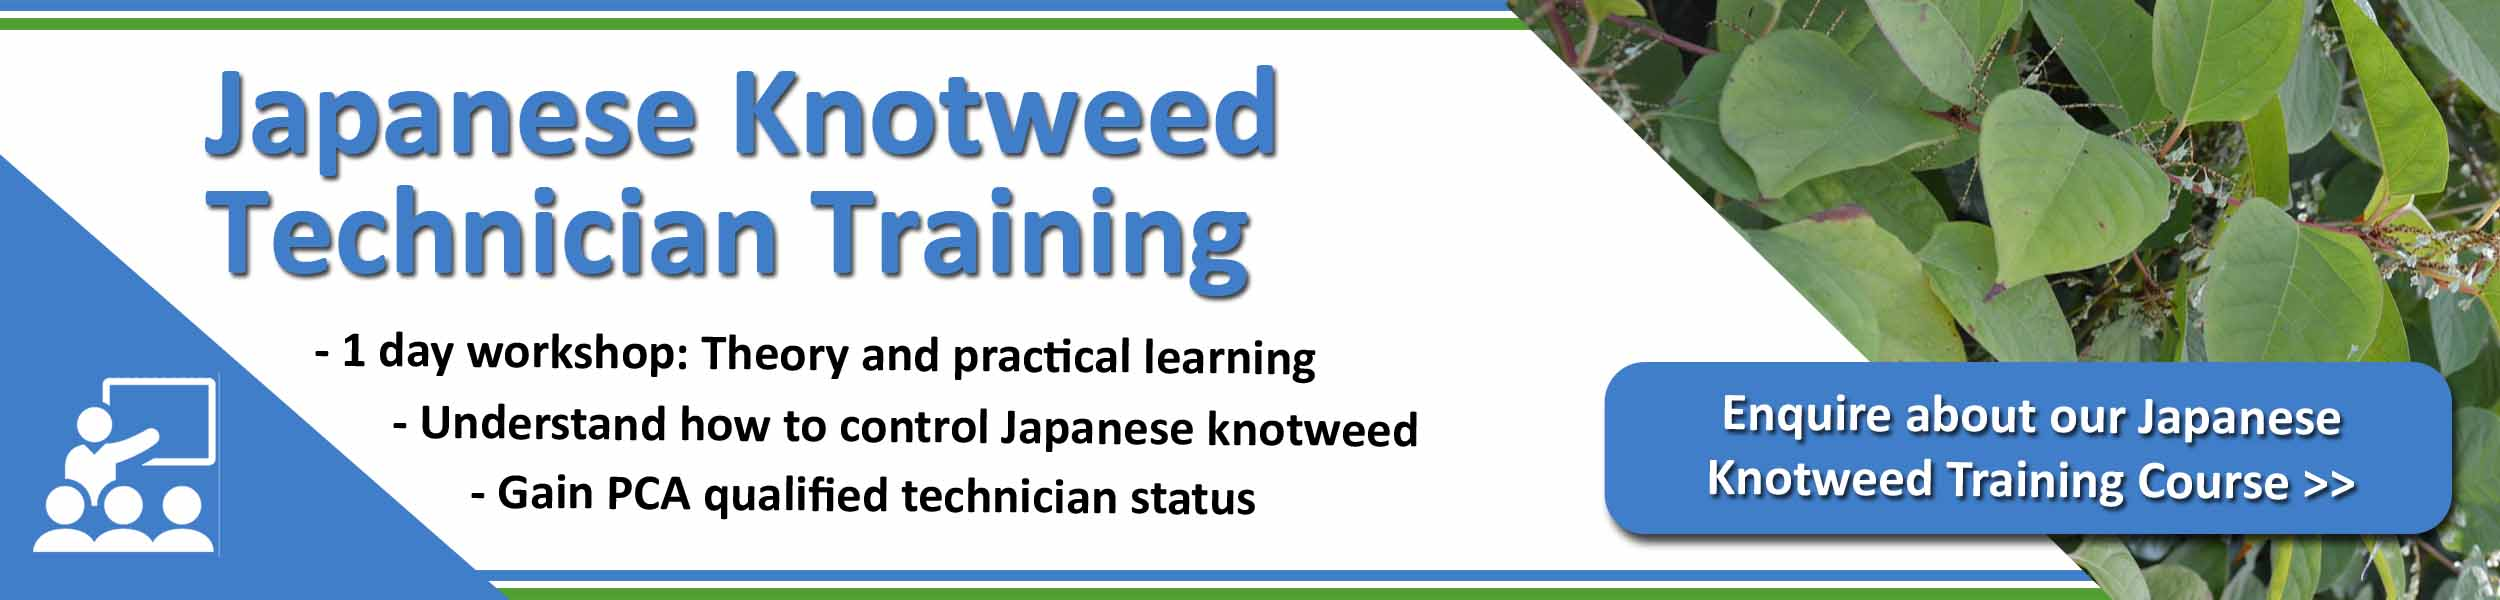 Japanese Knotweed Technician Training